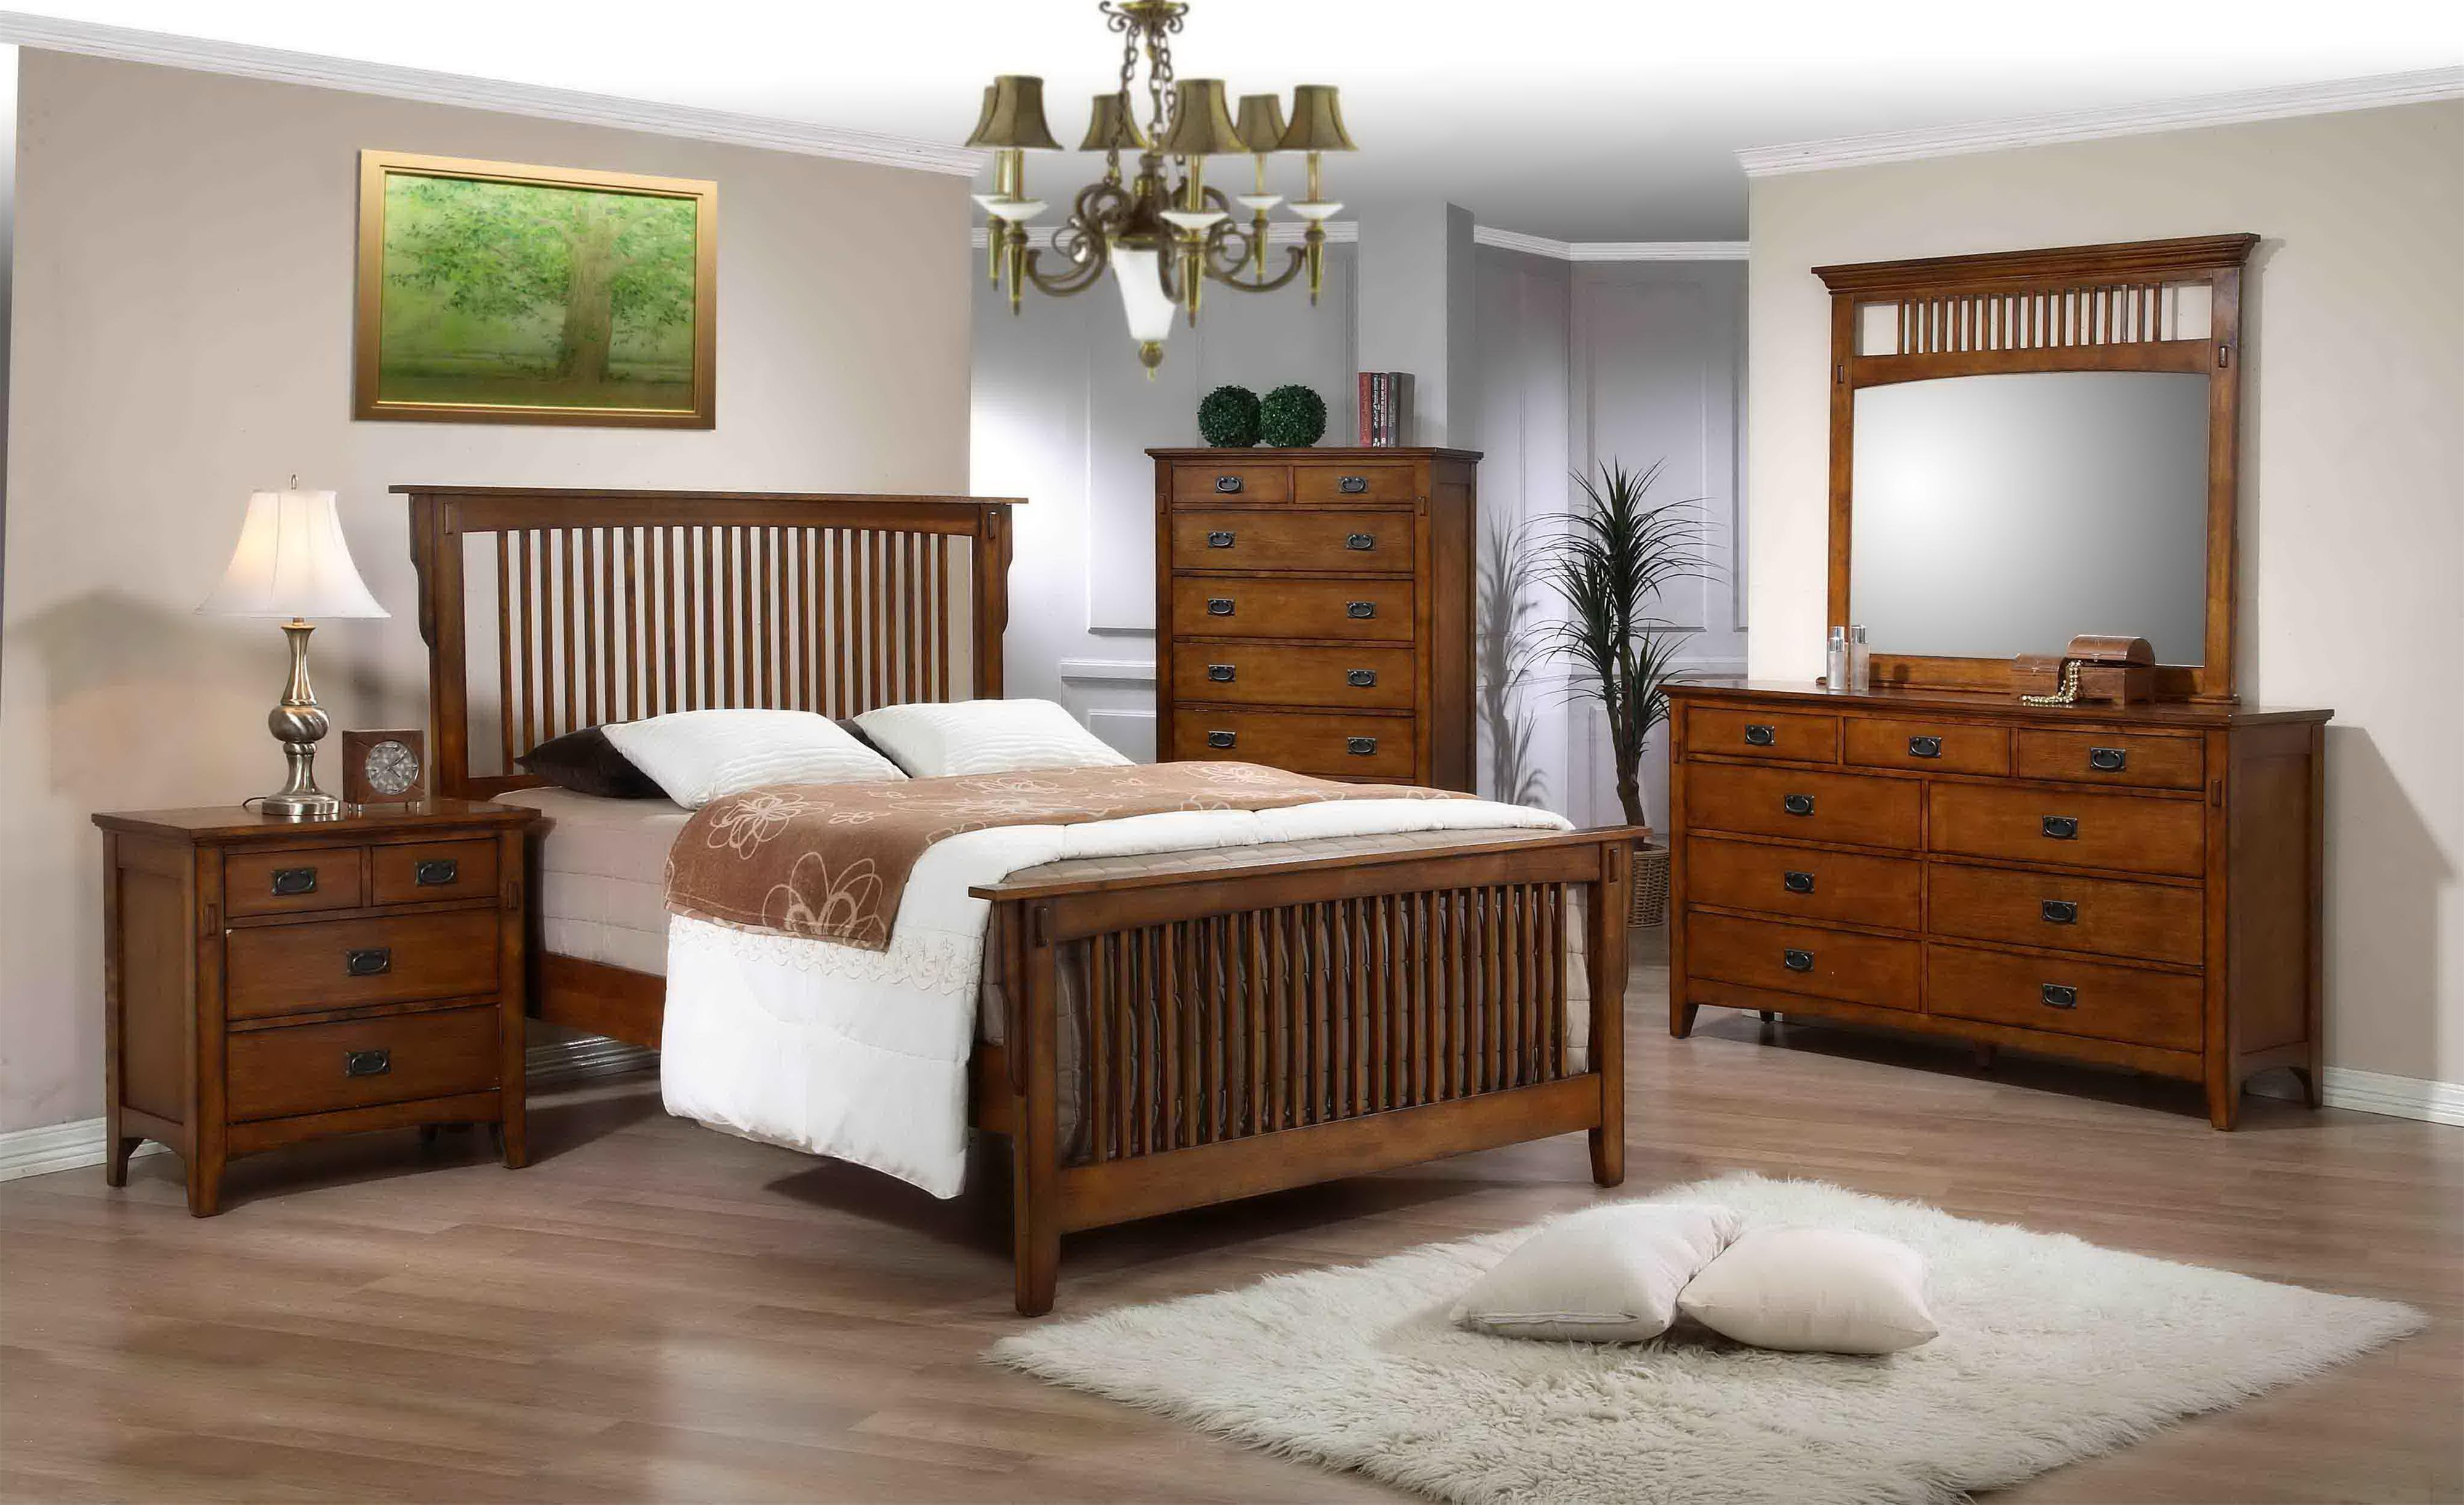 Elements international trudy tr750qb qr mission style for Mission style bedroom furniture